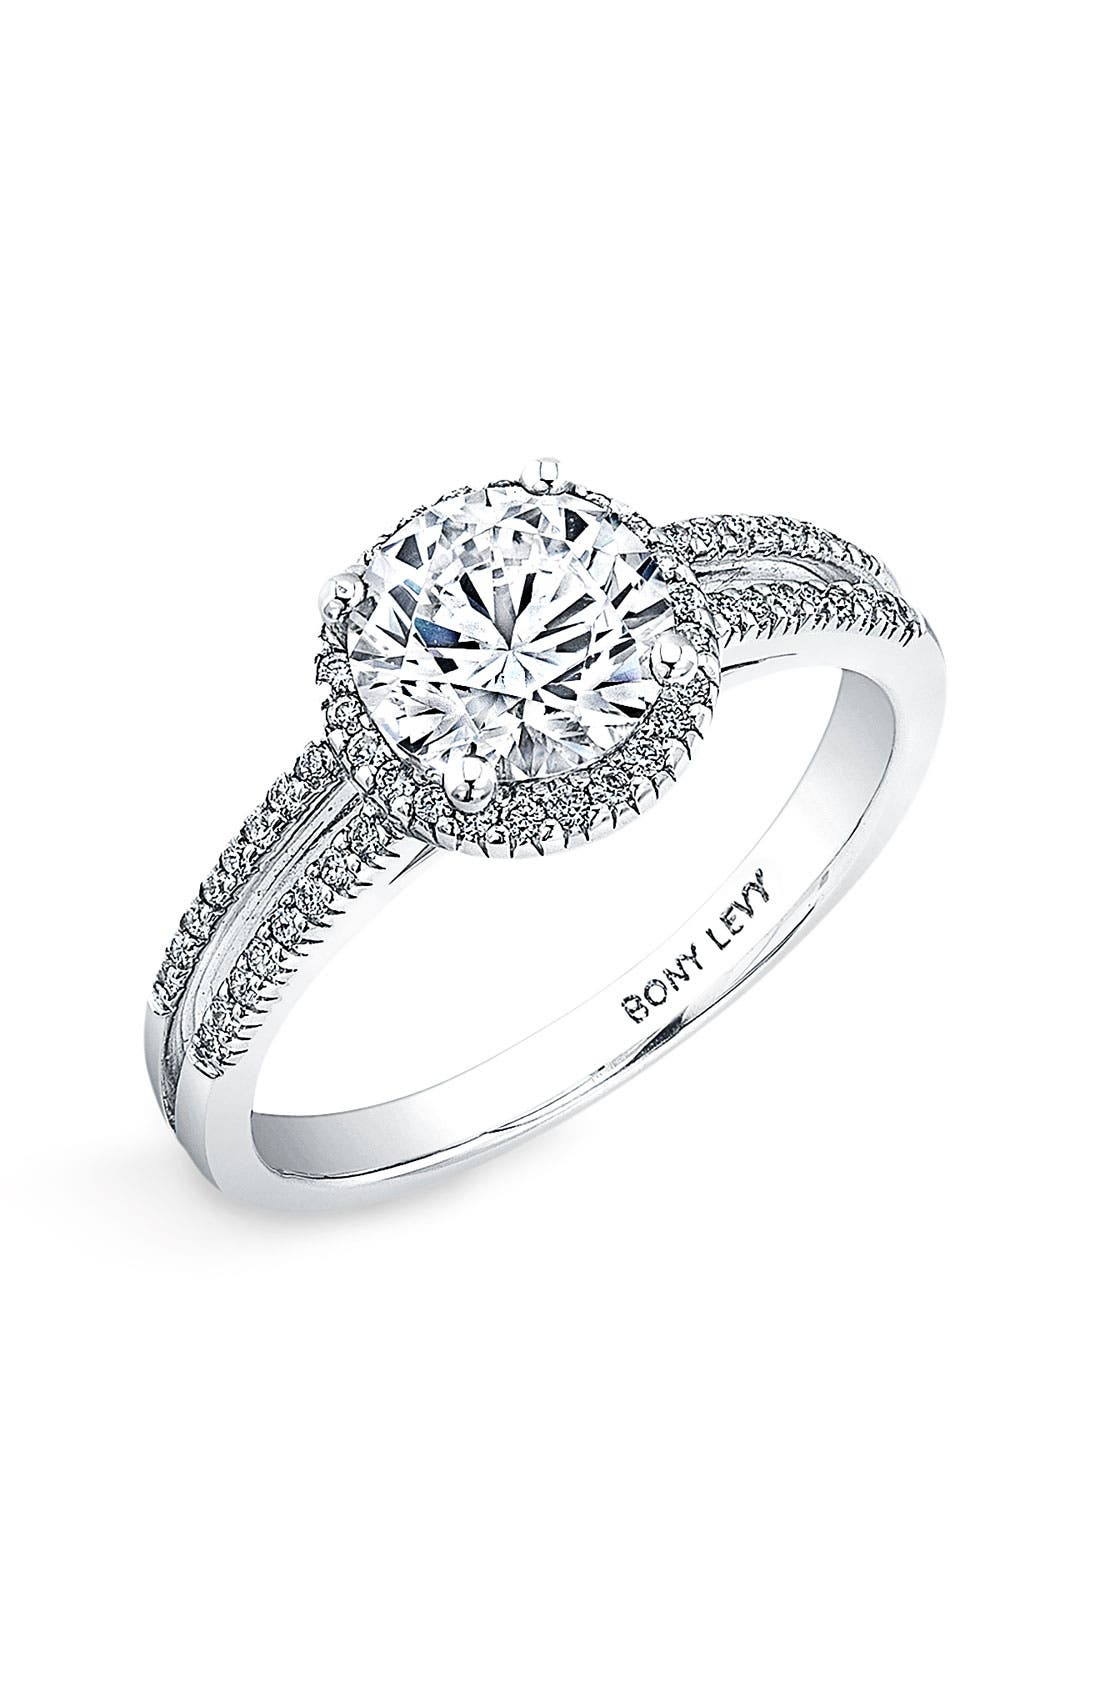 Main Image - Bony Levy Pavé Diamond Two-Row Engagement Ring Setting (Nordstrom Exclusive)